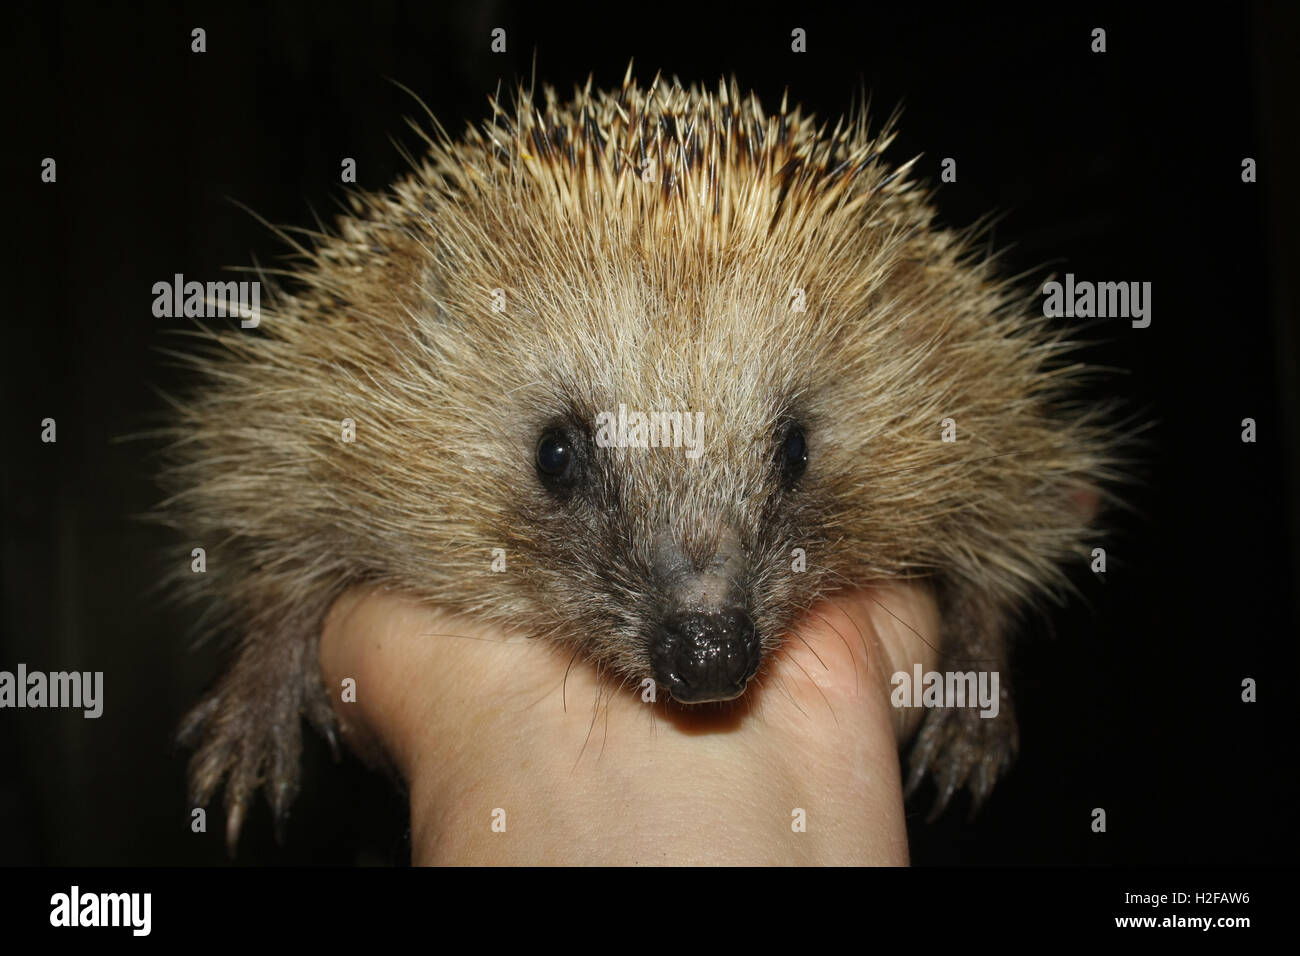 spiny hedgehog on palm - Stock Image